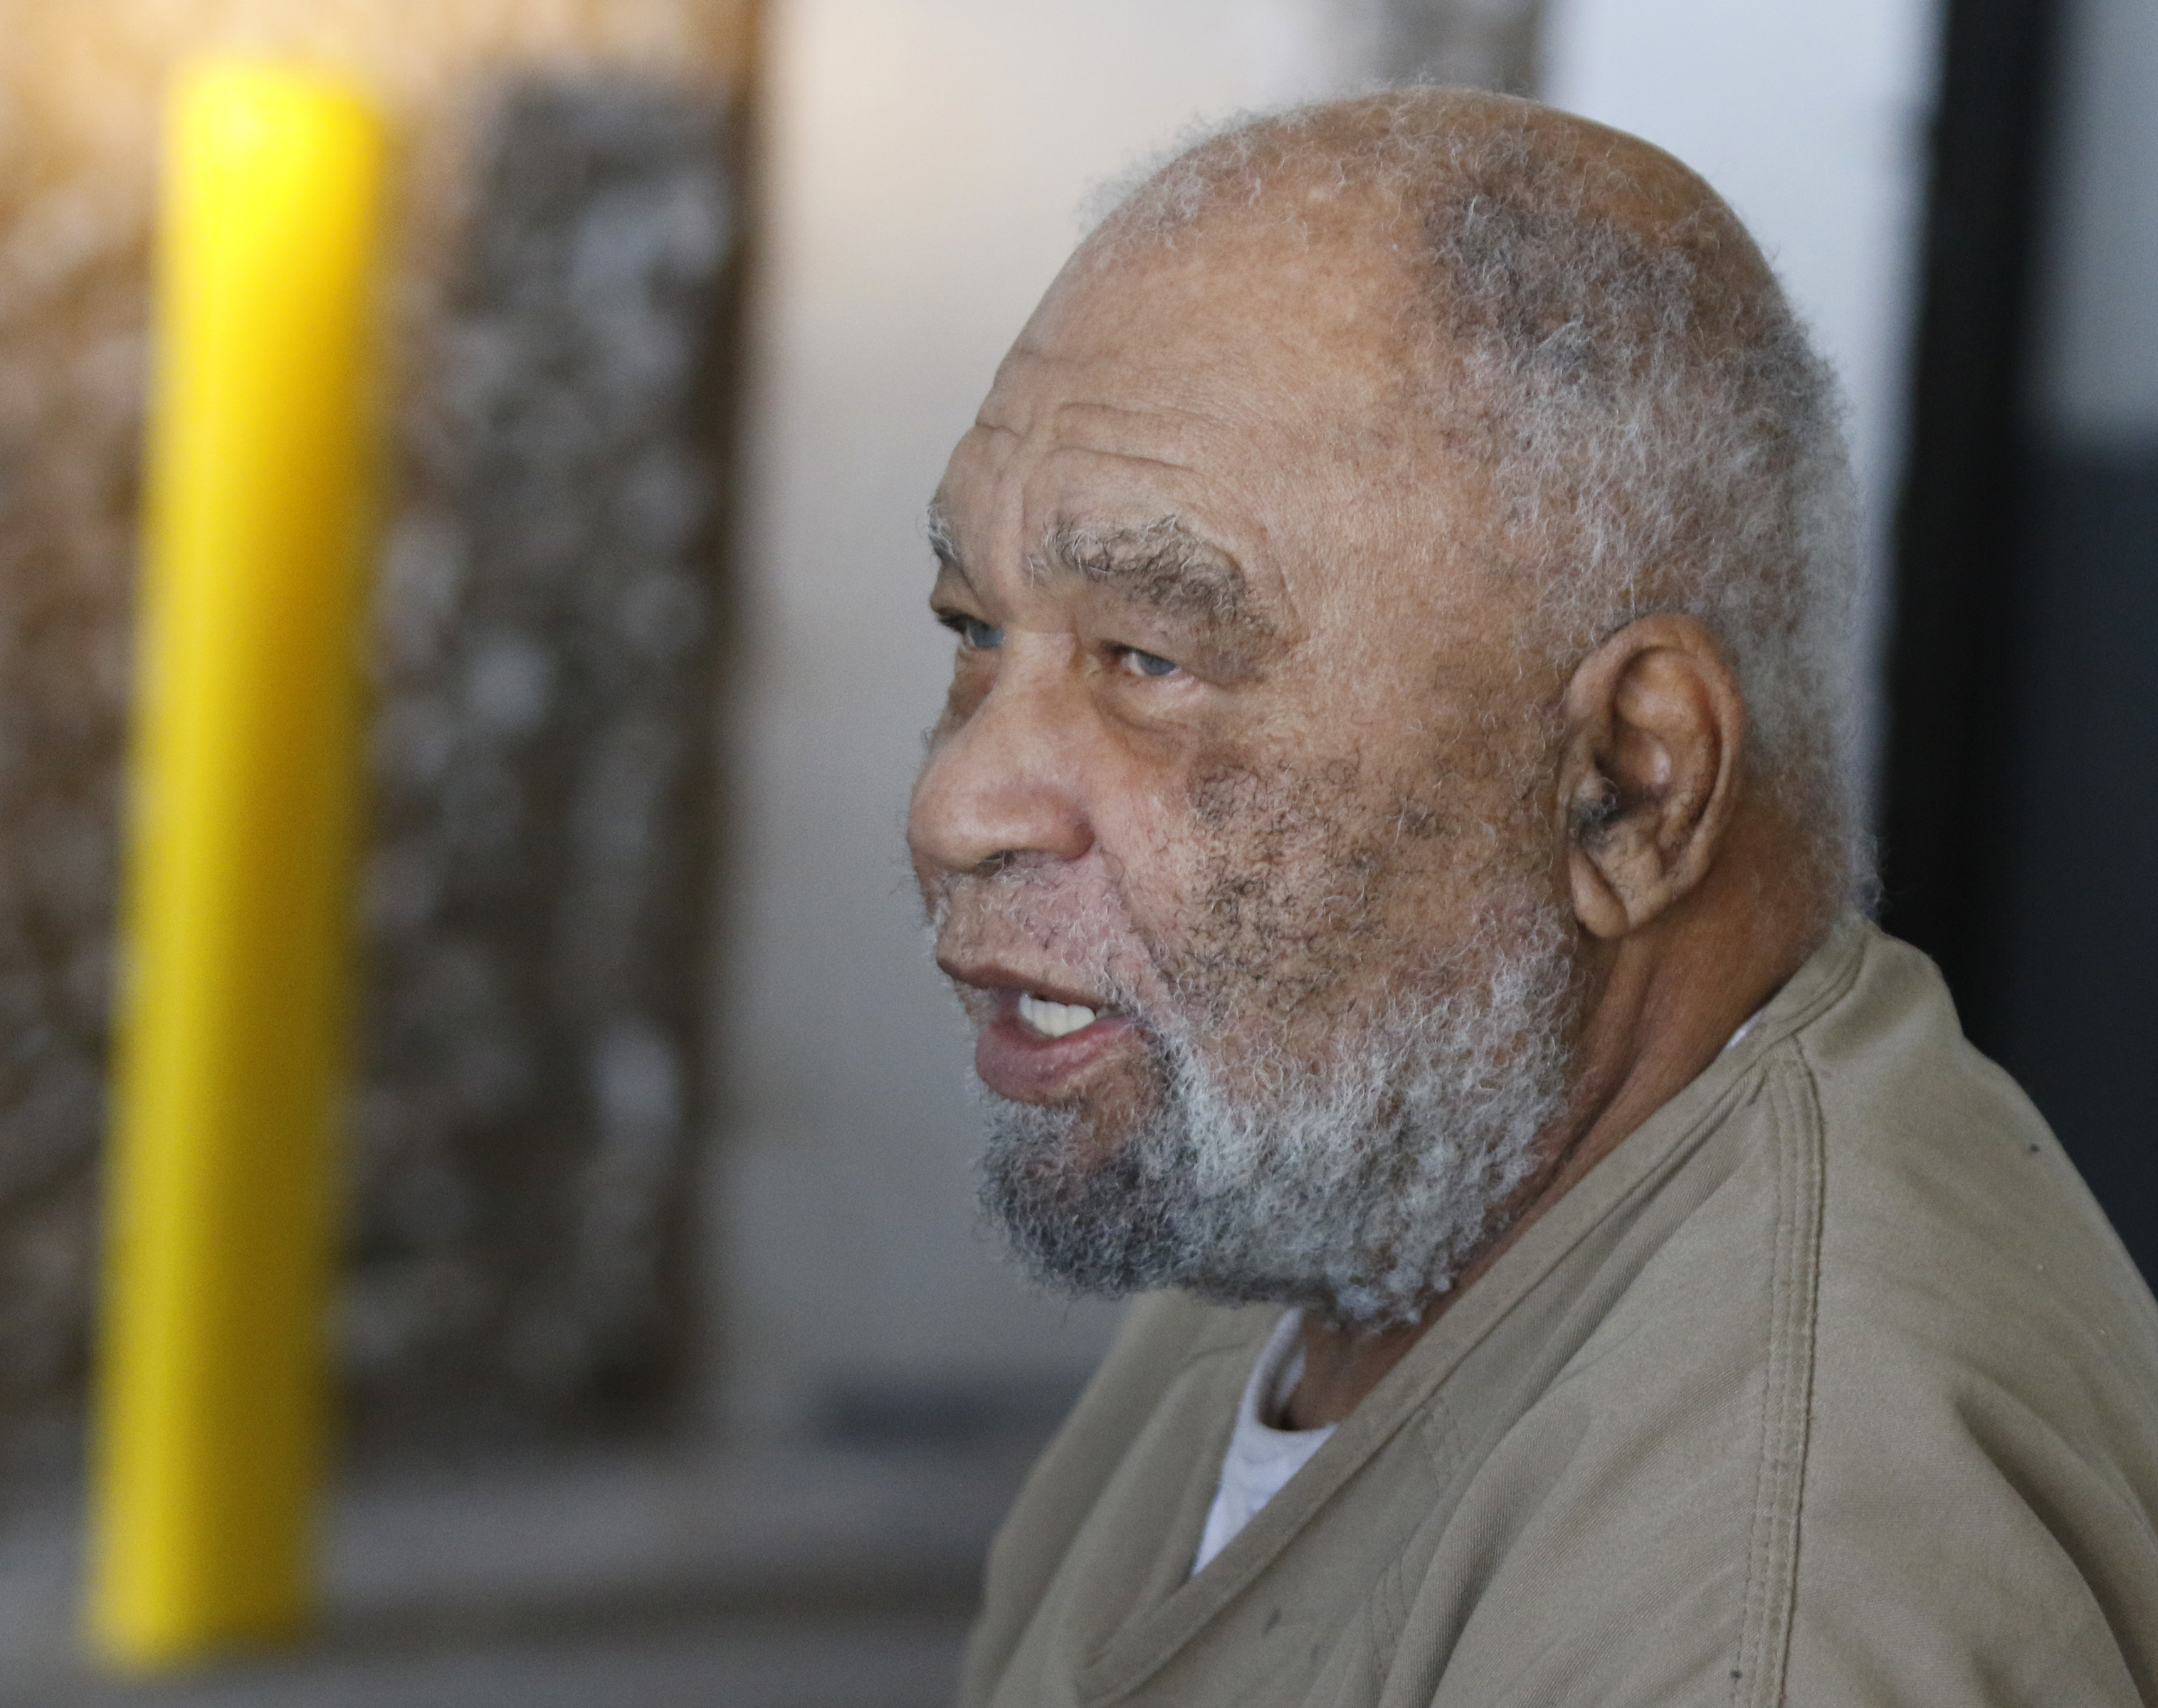 Samuel Little: Convicted murderer now linked to over 60